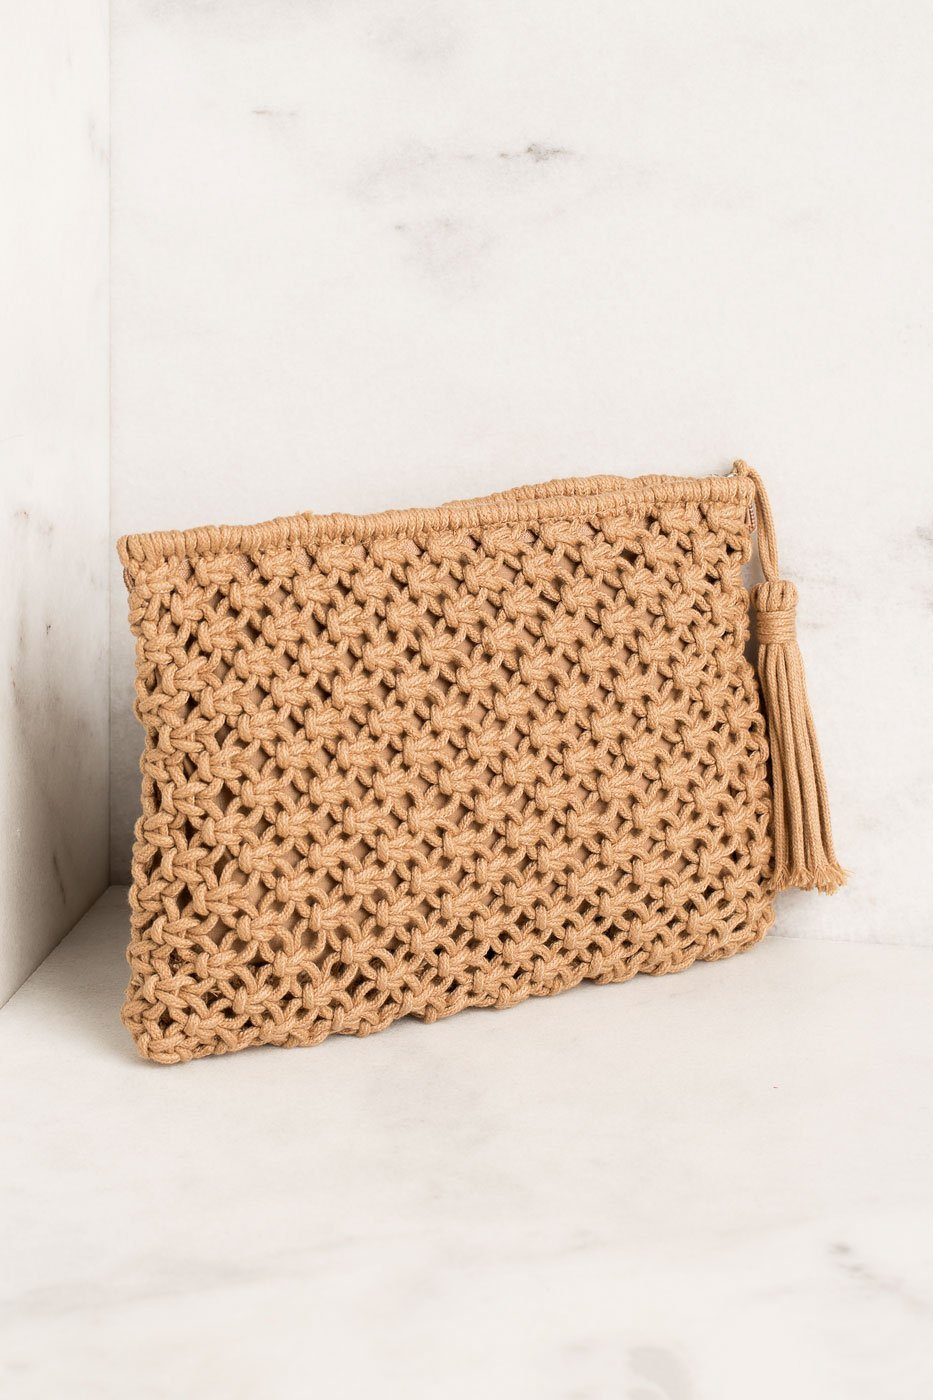 Woven Clutch with Tassel Zipper